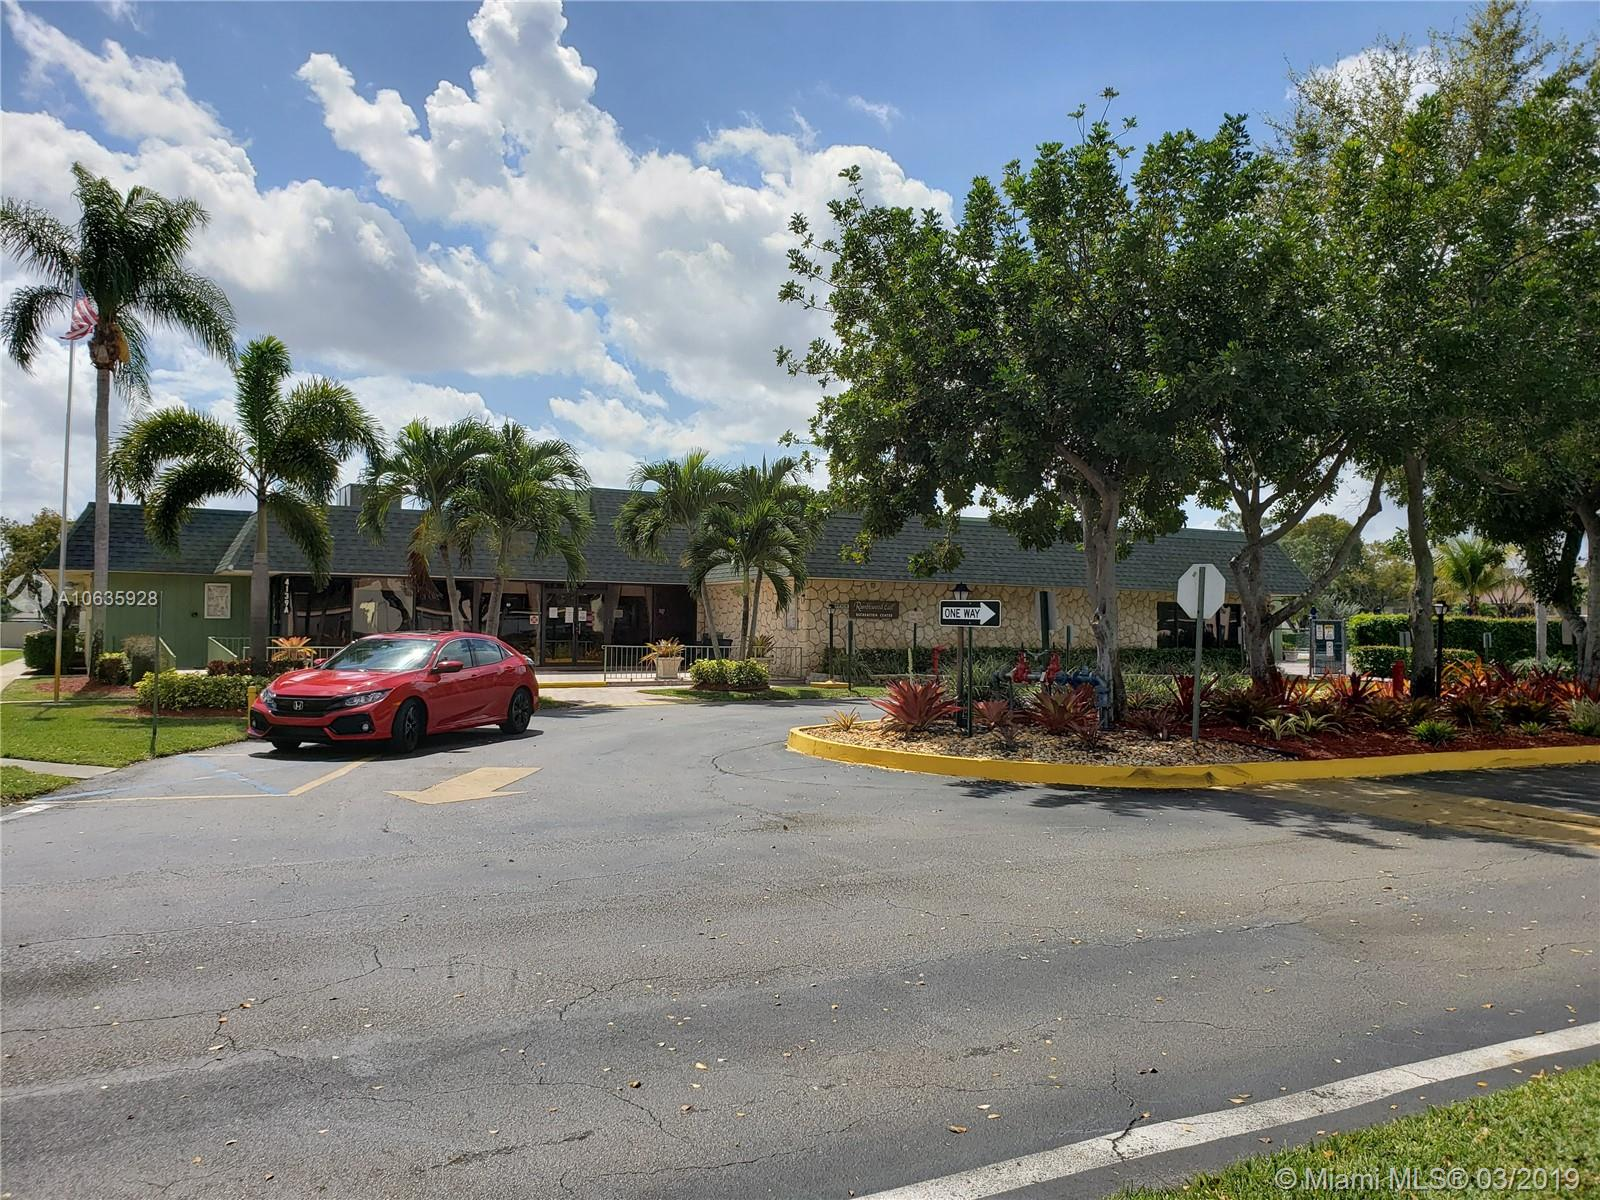 Listing A10635928 - Large Photo # 13